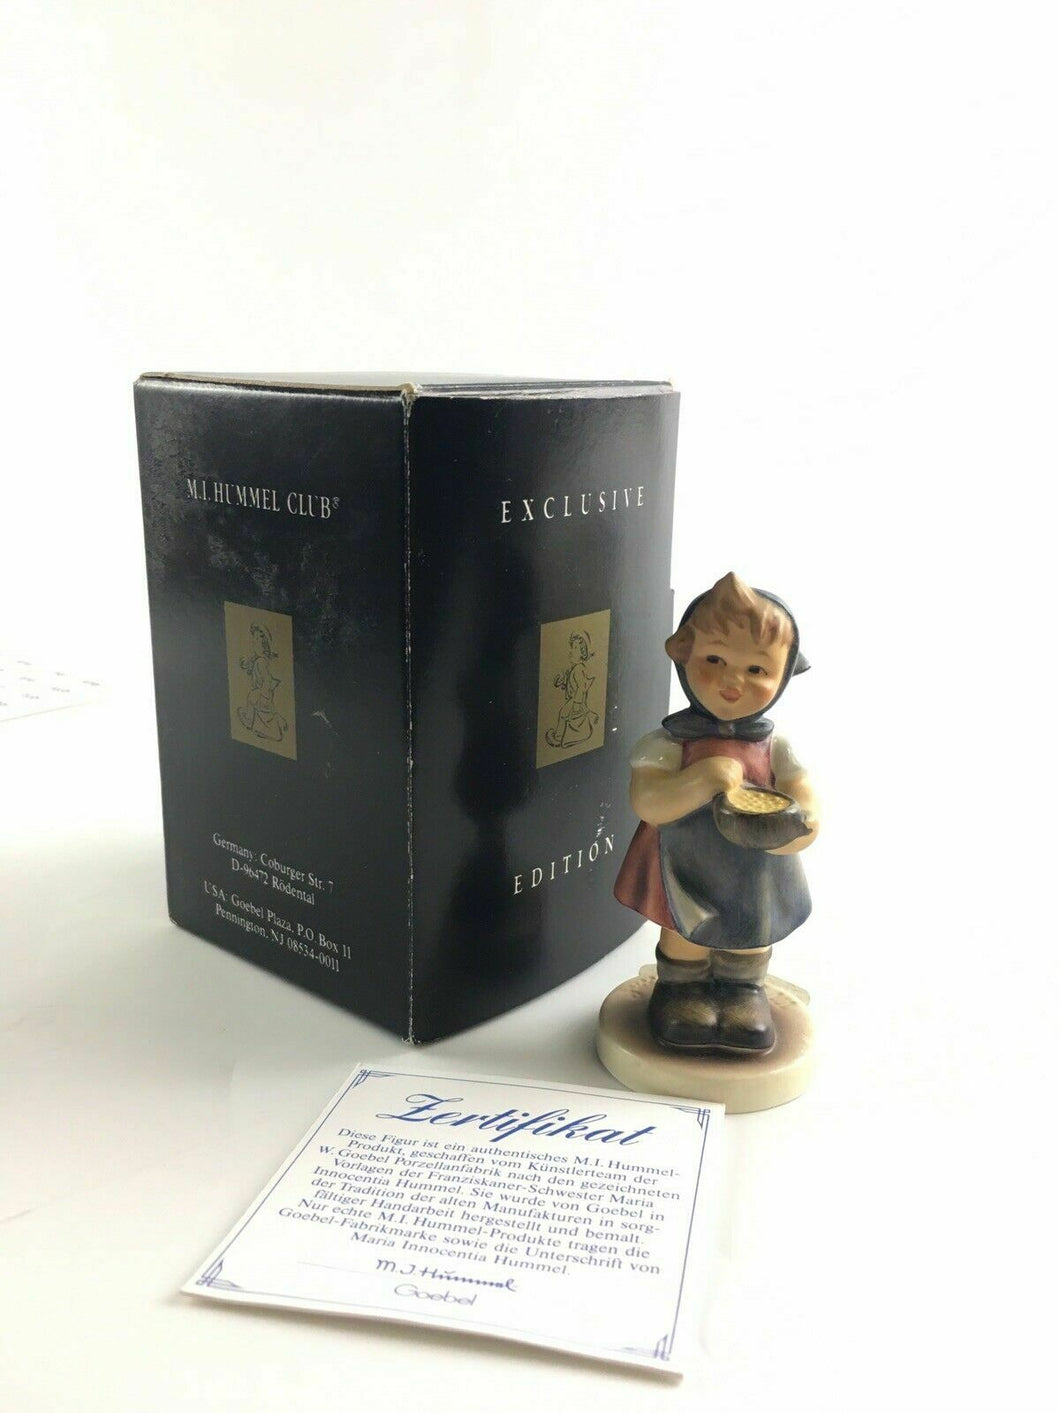 MI HUMMEL Club Girl Figurine From Me To You #36 Exclusive 1995/96 3.5